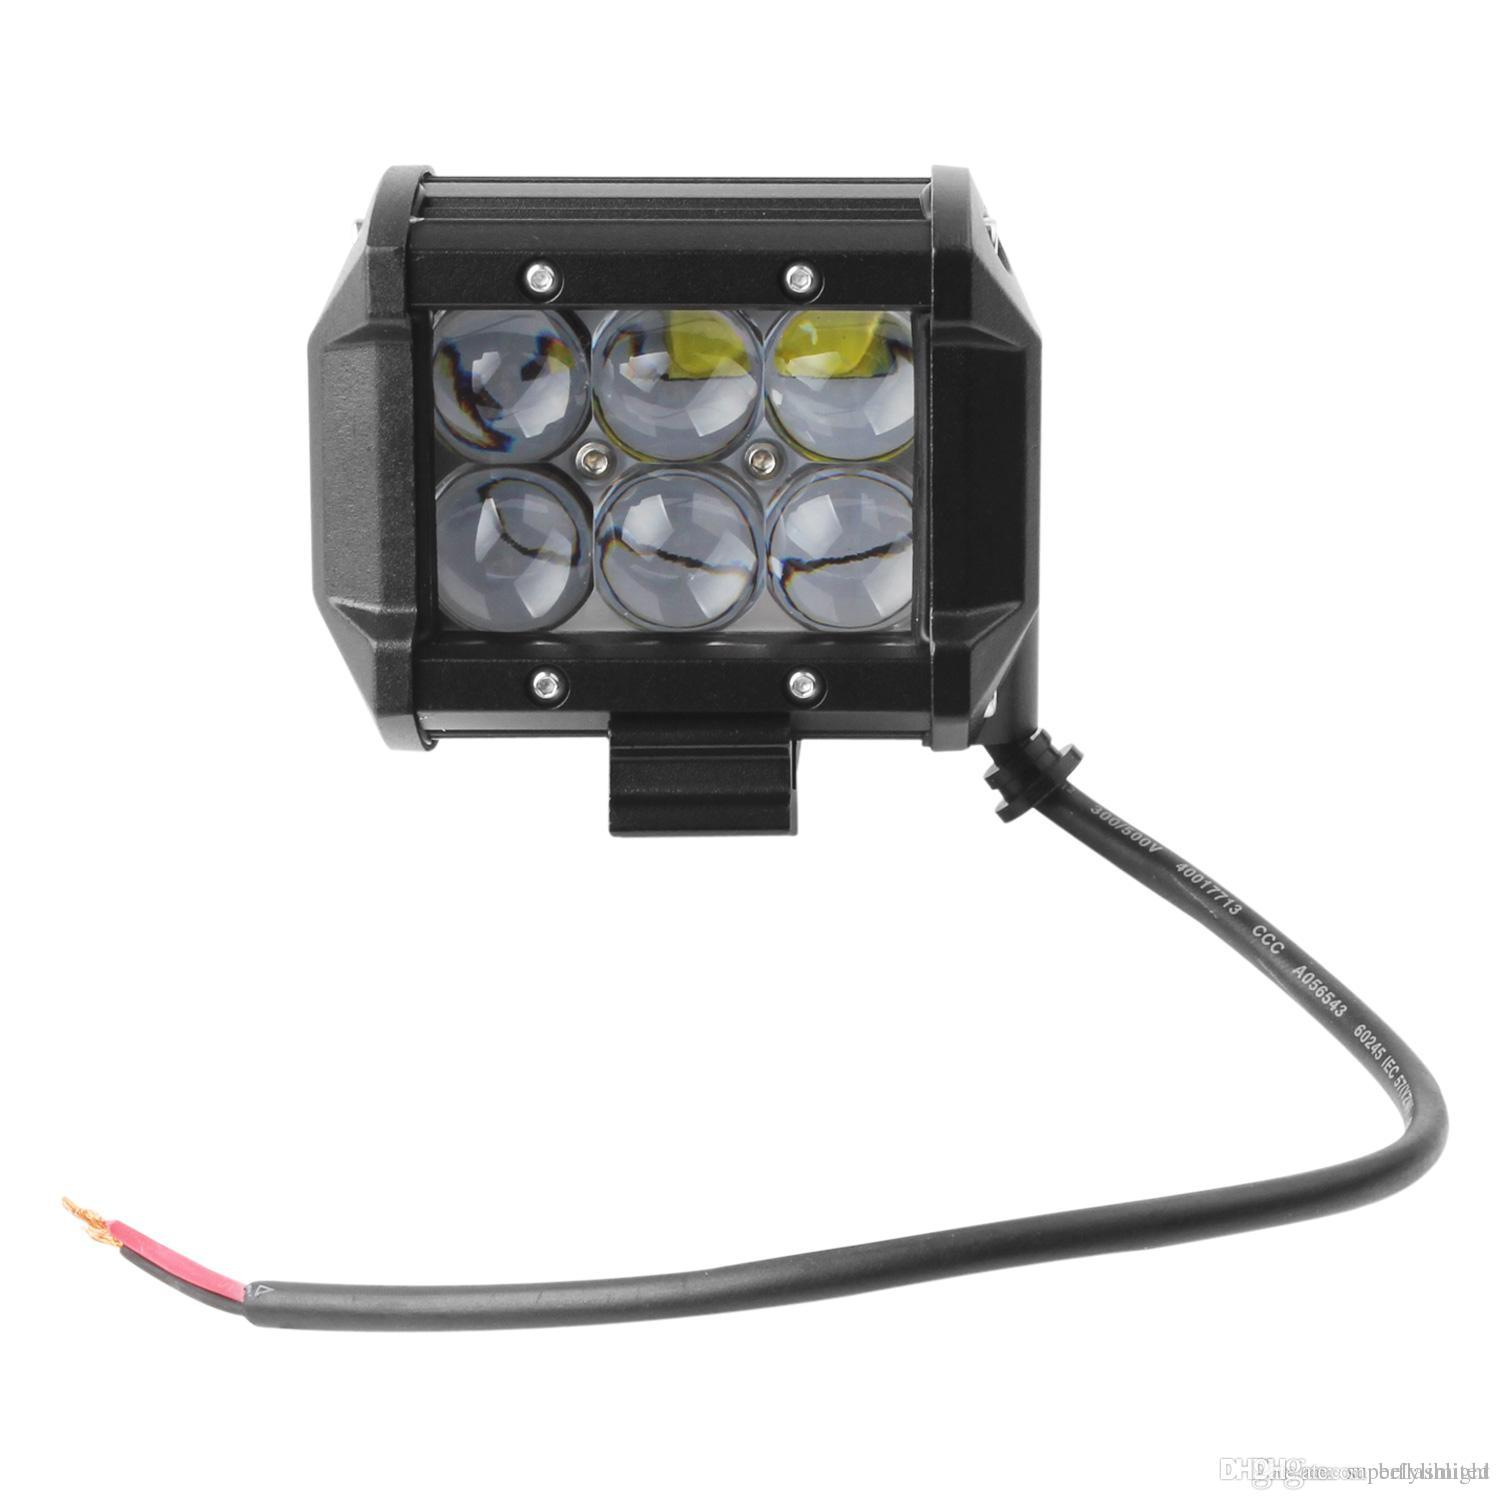 4 Inch Vehicle 30W 2550LM LED Work Spot Light Bar 4WD ATV Off-road SUV Driving Lamp